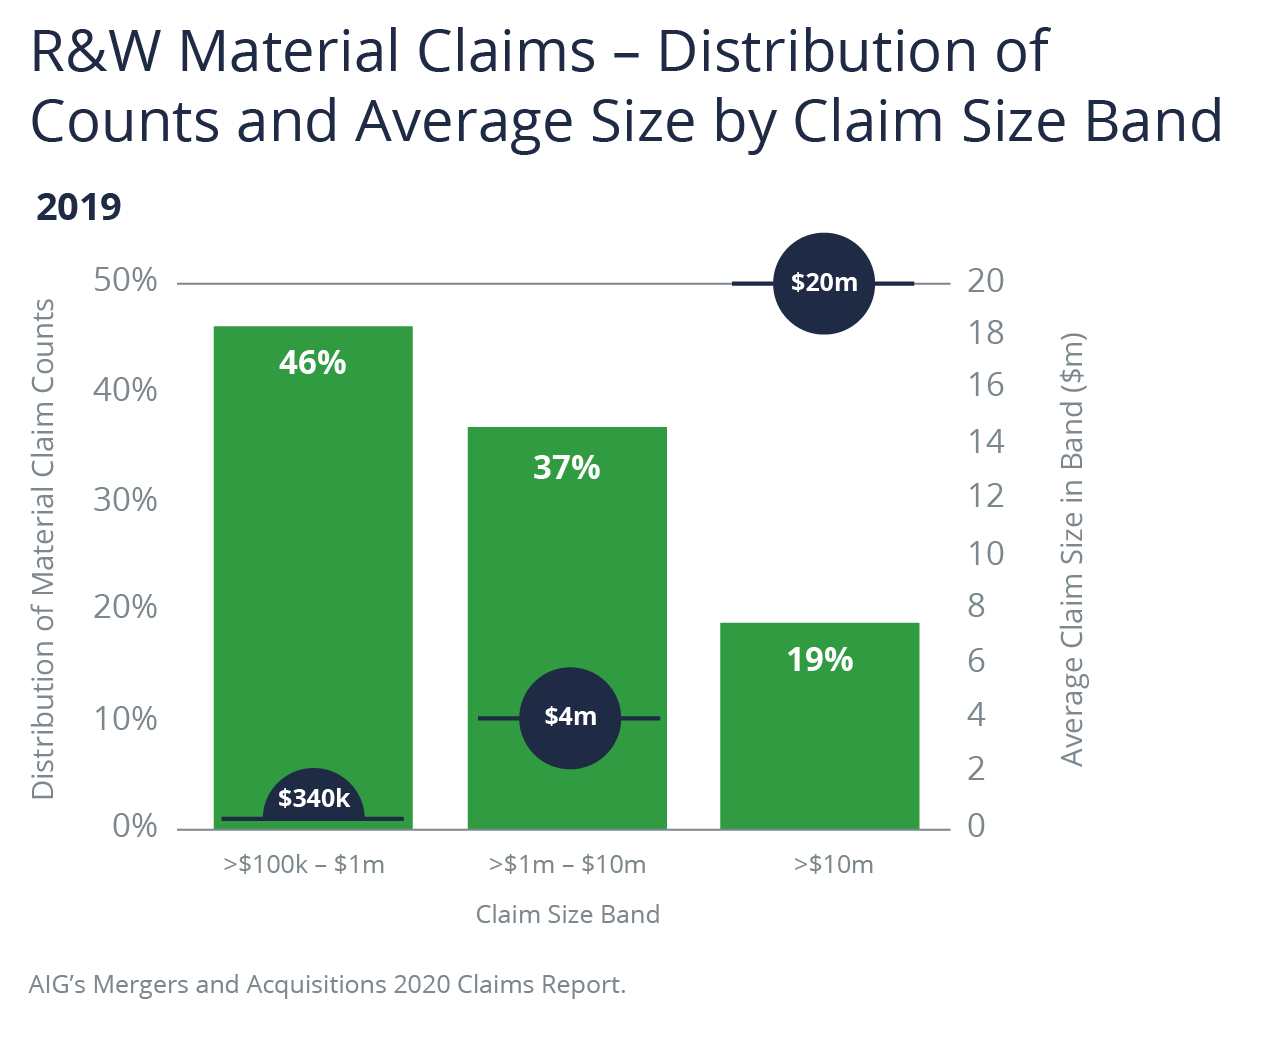 R&W Material Claims Graphic - Distribution of Counts and Average Size by Claim Size Band